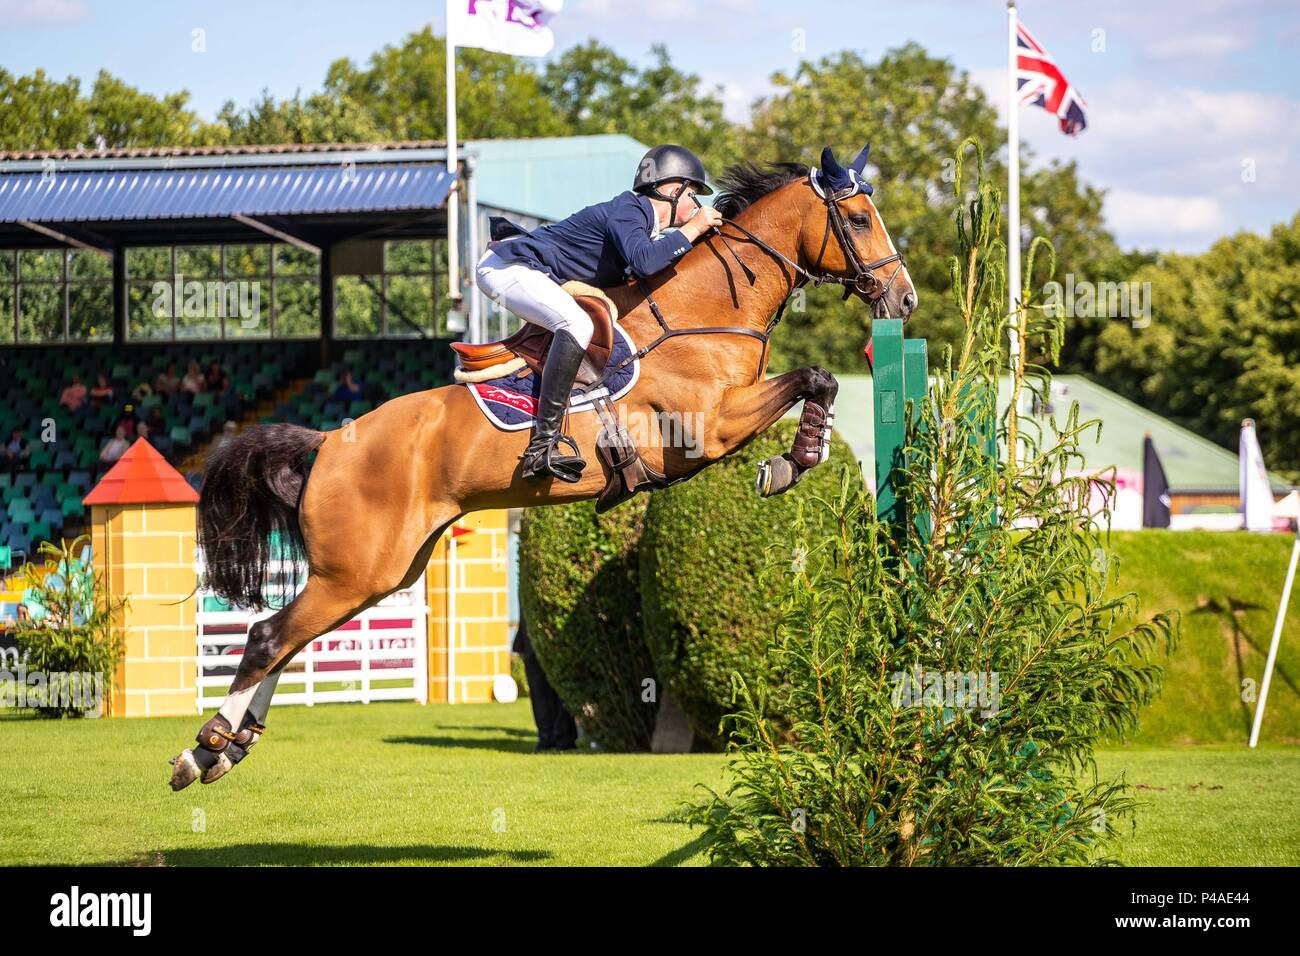 Harry Charles riding Controe.  GBR. The Bunn Lesiure Tankard. CSI4*. The Al Shira'aa Hickstead Derby Meeting. Showjumping. The All England Jumping Course. Hickstead. West Sussex. UK. Day 2. 21/06/2018. - Stock Image